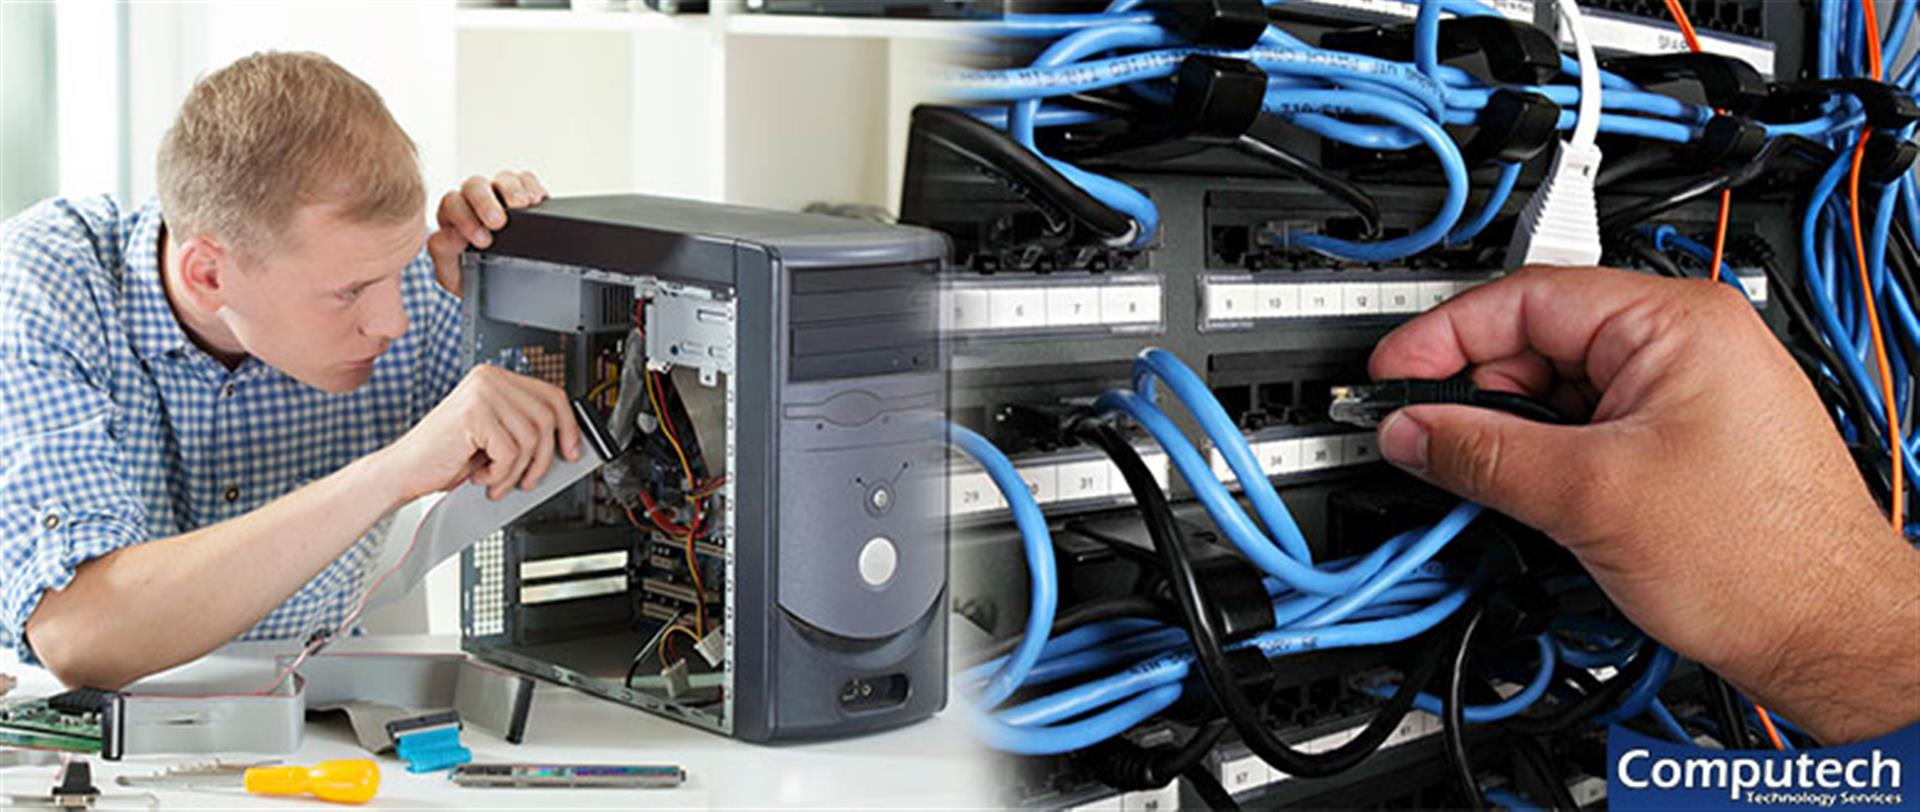 Manassas Virginia Onsite PC & Printer Repair, Networking, Voice & Data Cabling Contractors